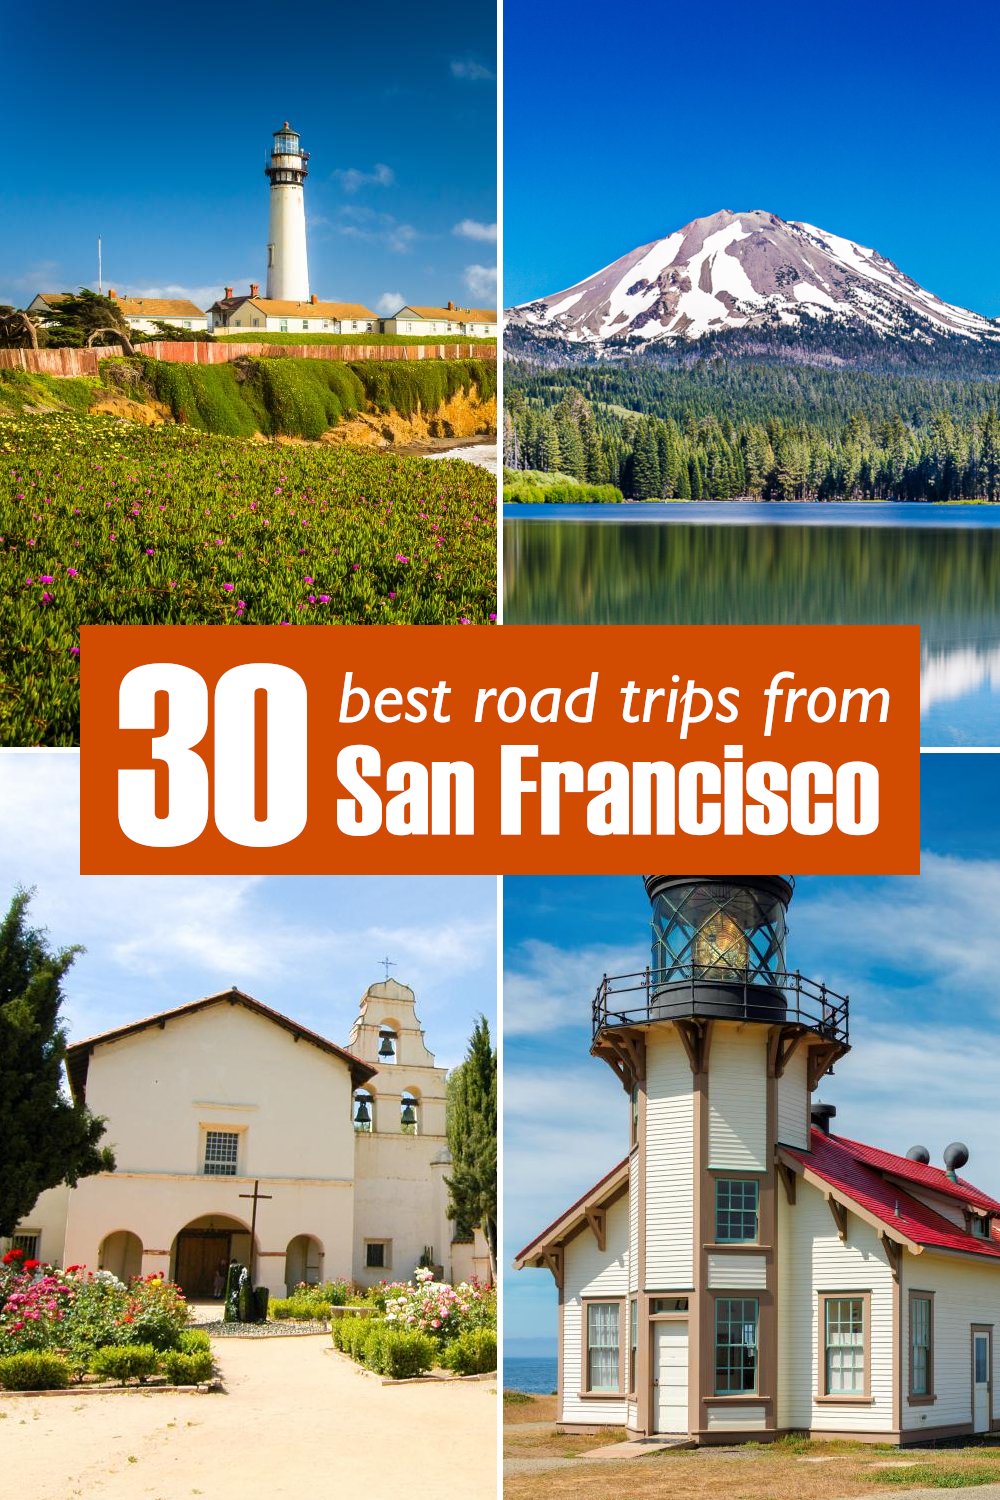 Best road trips from San Francisco - from short drives around California to week-long adventures to National Parks, exciting city breaks and neighbor states.